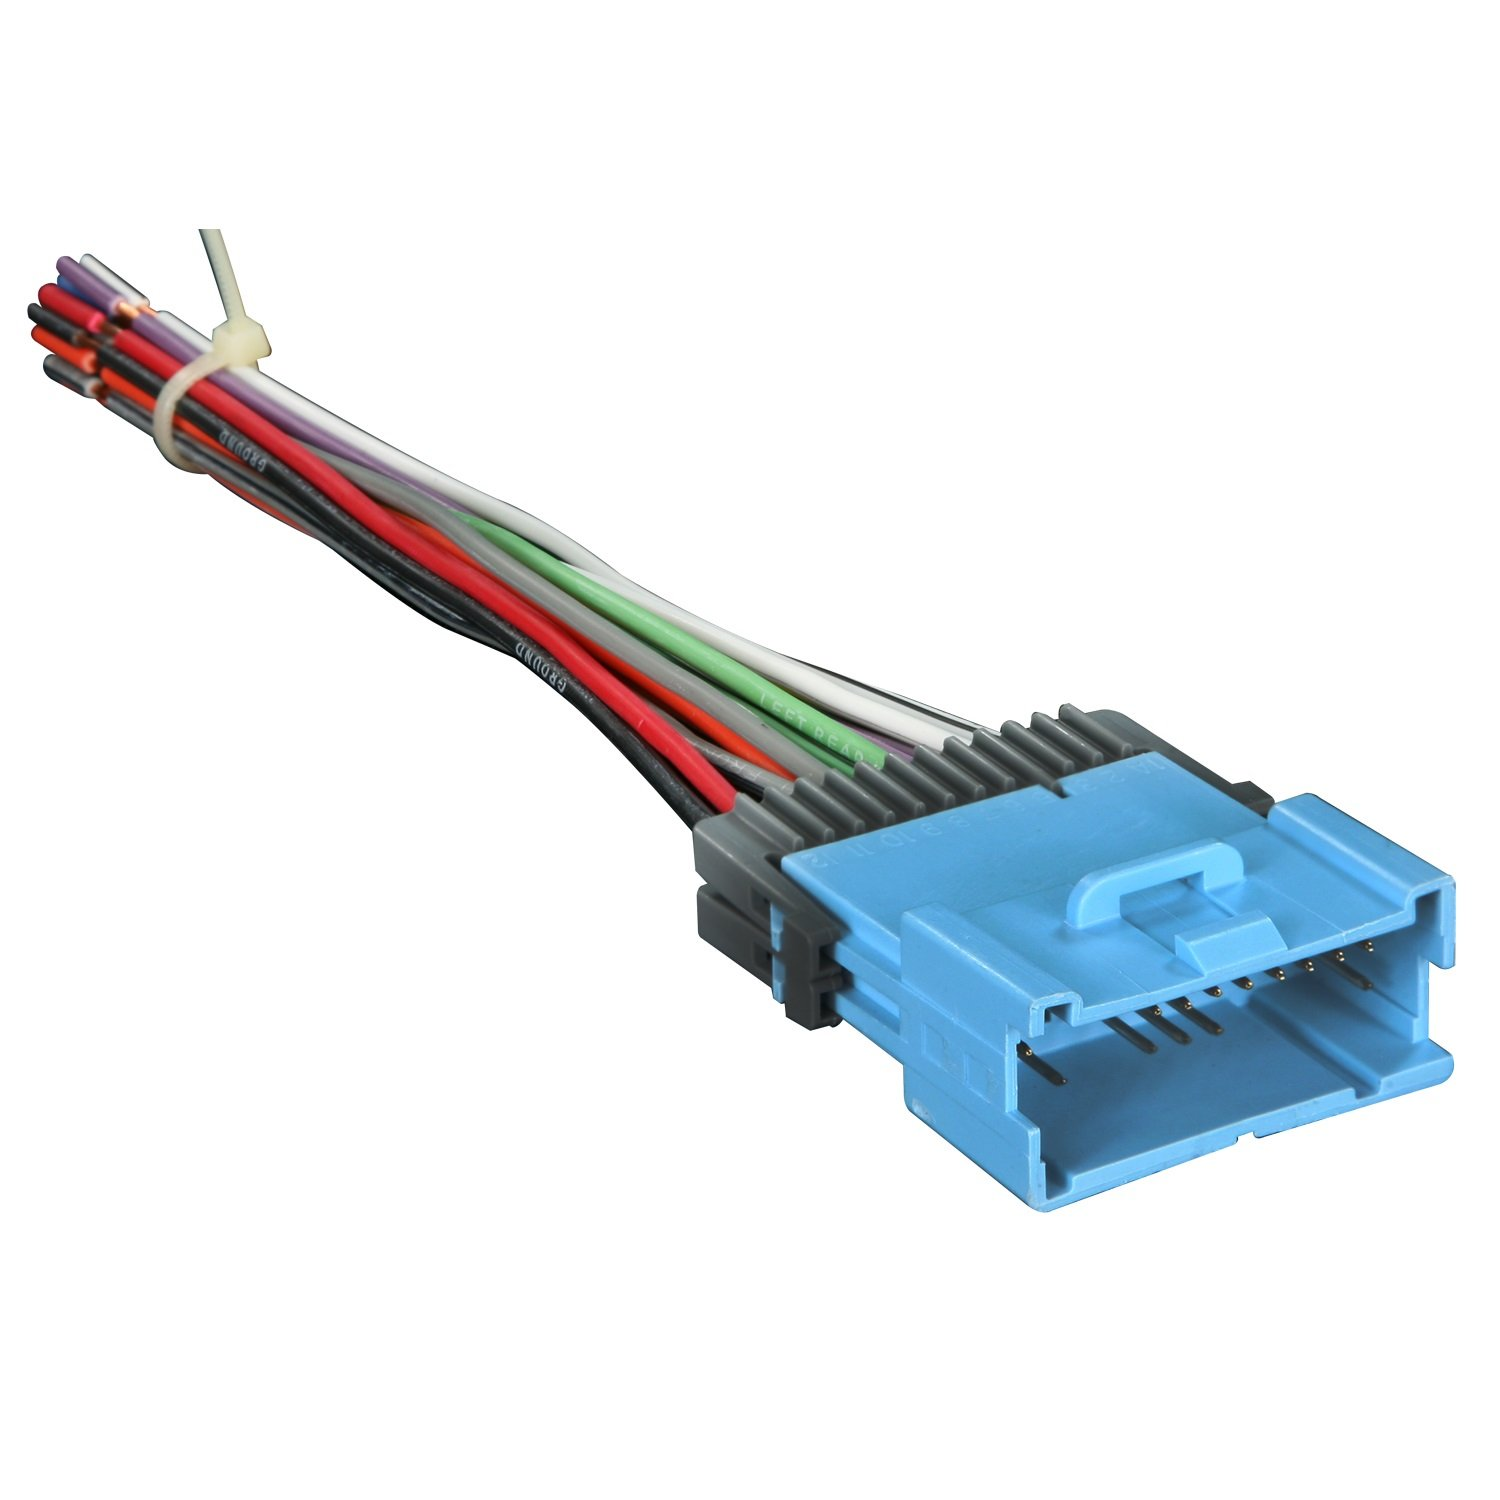 61ruWw 2aJL._SL1500_ amazon com metra 70 2102 radio wiring harness for gm 04 05 car GM Wiring Color Codes at n-0.co